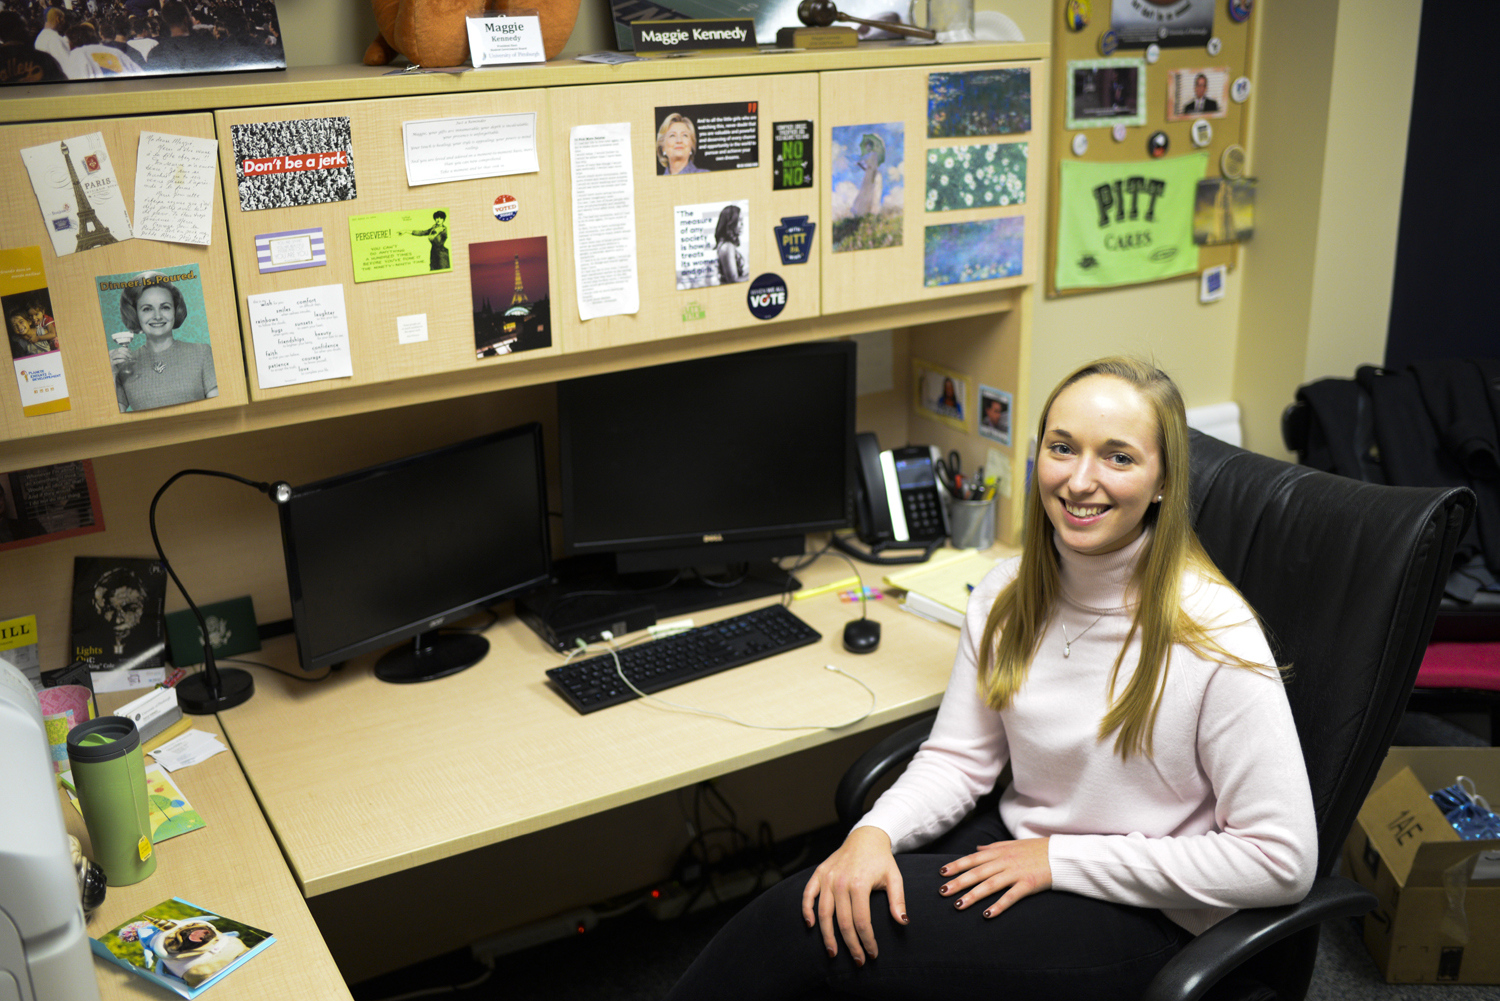 The office of SGB President Maggie Kennedy is decorated with quotes from women like Hillary Clinton and Michelle Obama. Kennedy is a planning committee member for the Pitt Women's Leadership Experience this year.